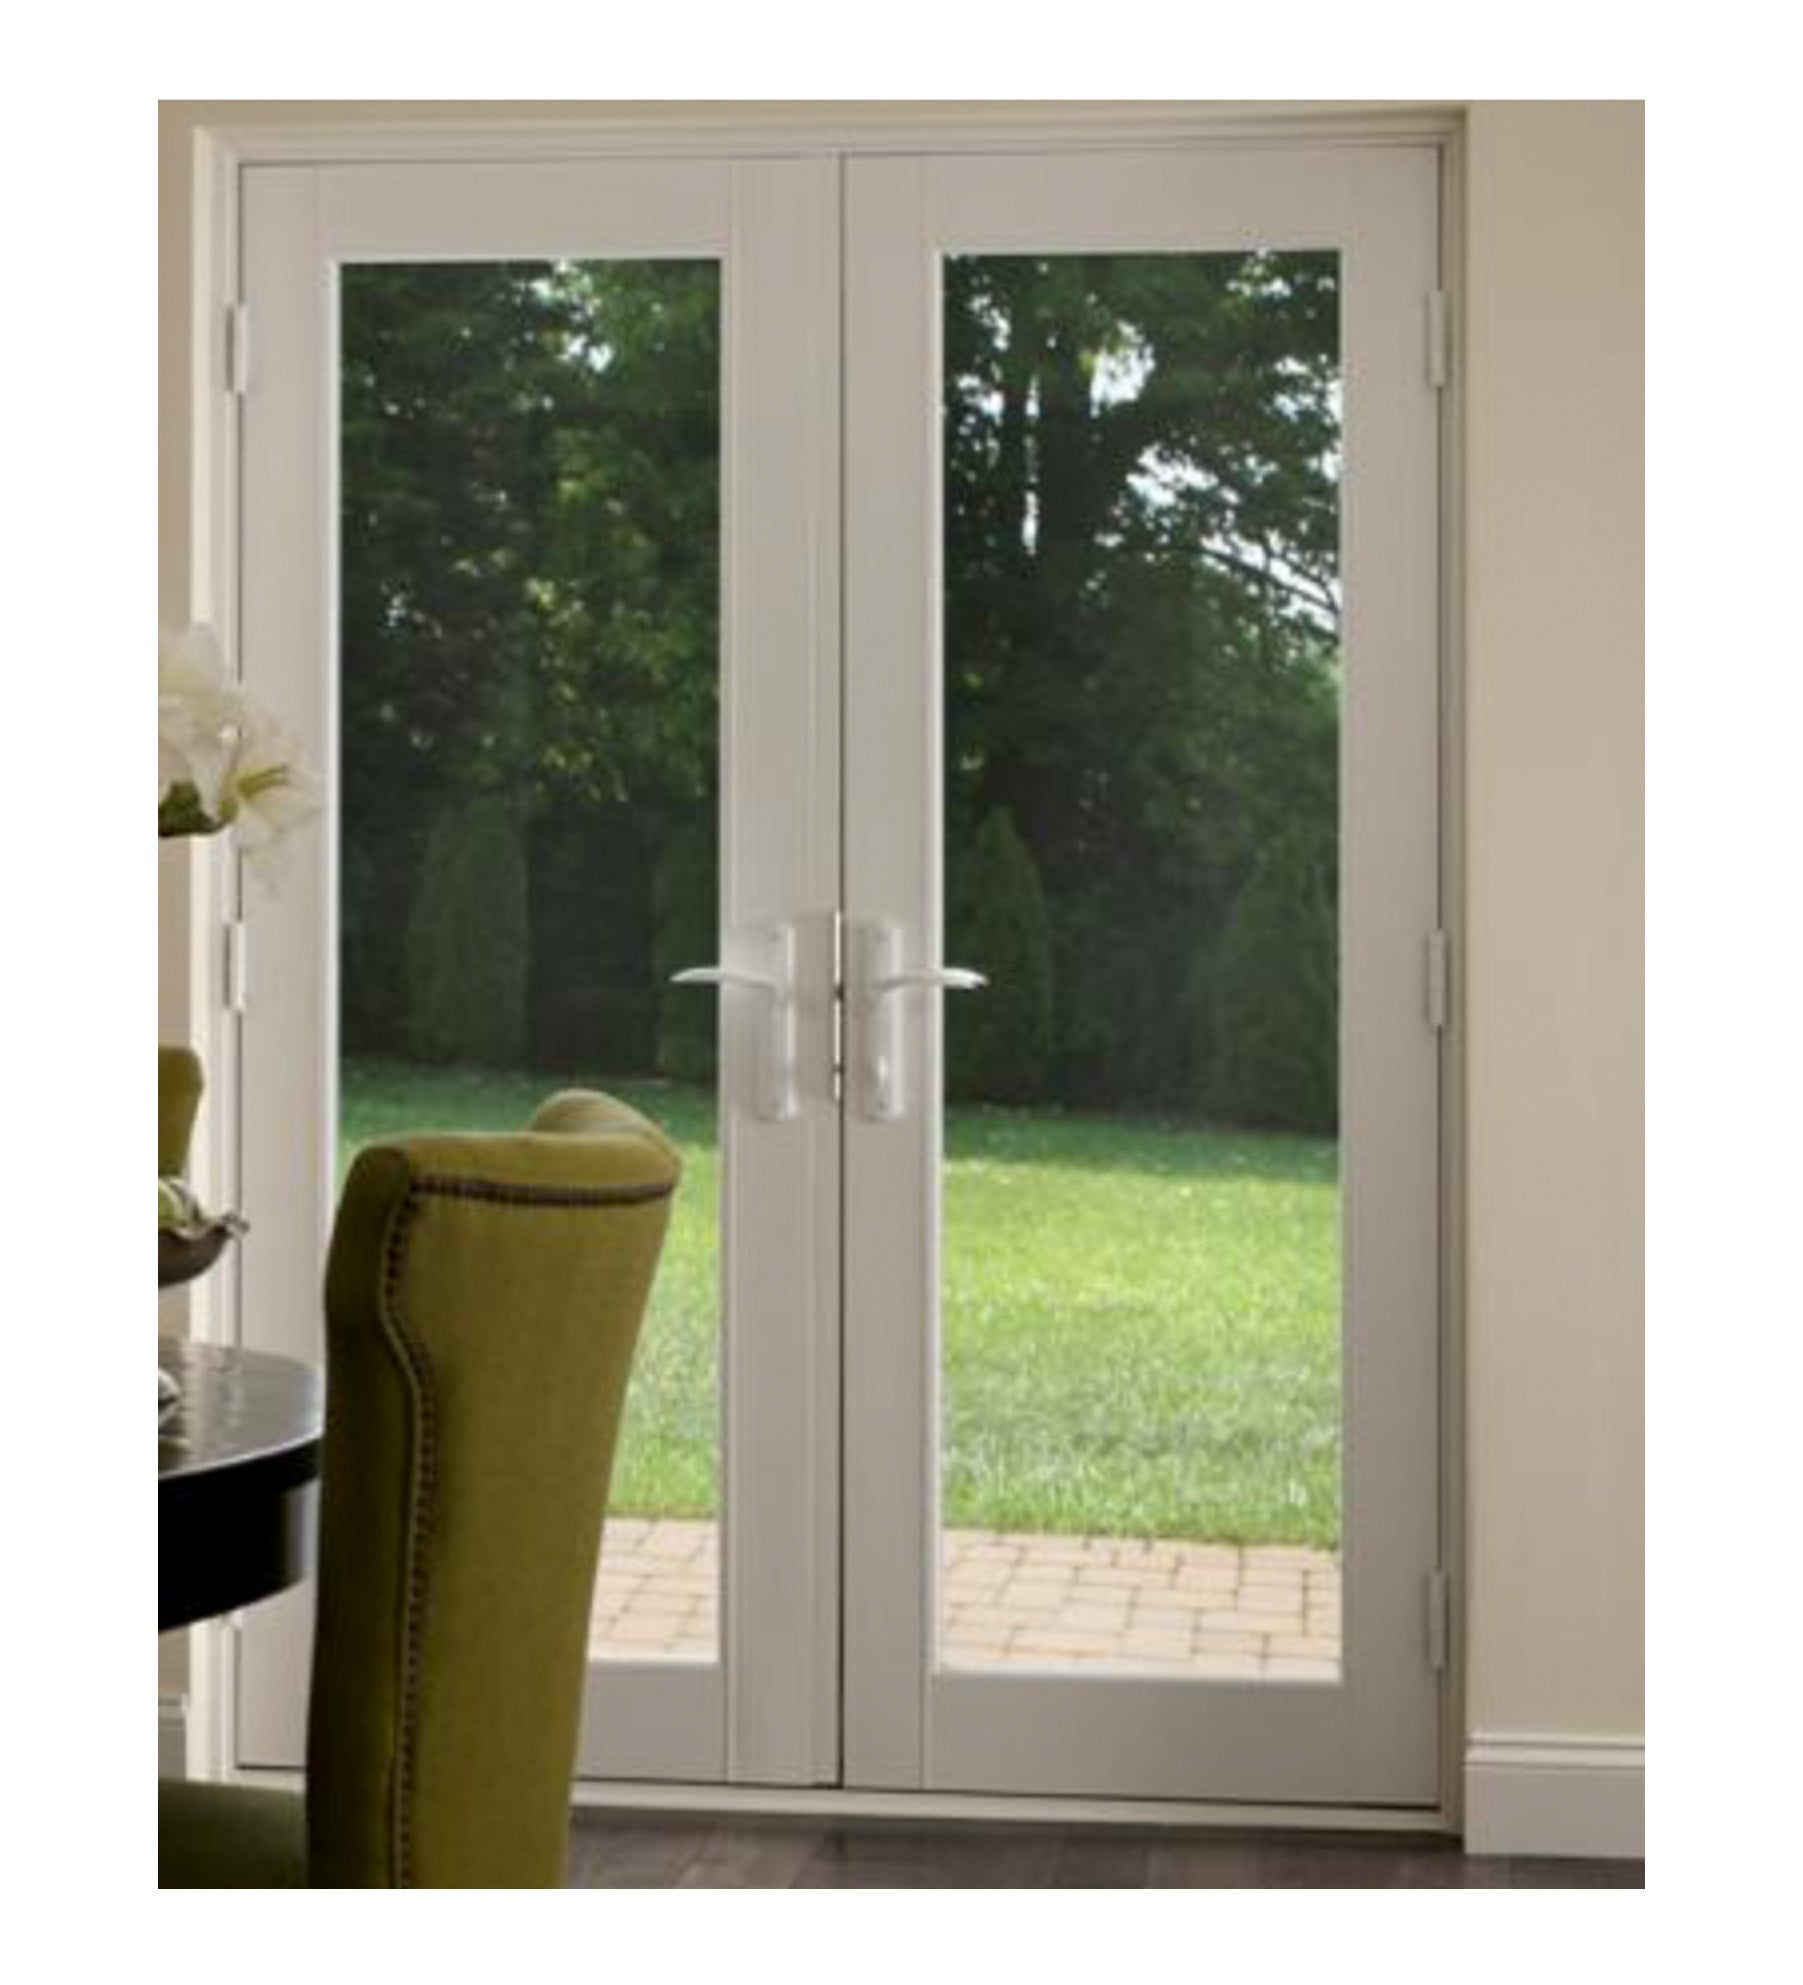 INSTALLED Milgard White Vinyl Retrofit Hinged Tuscany French Patio Door STARTING $3562